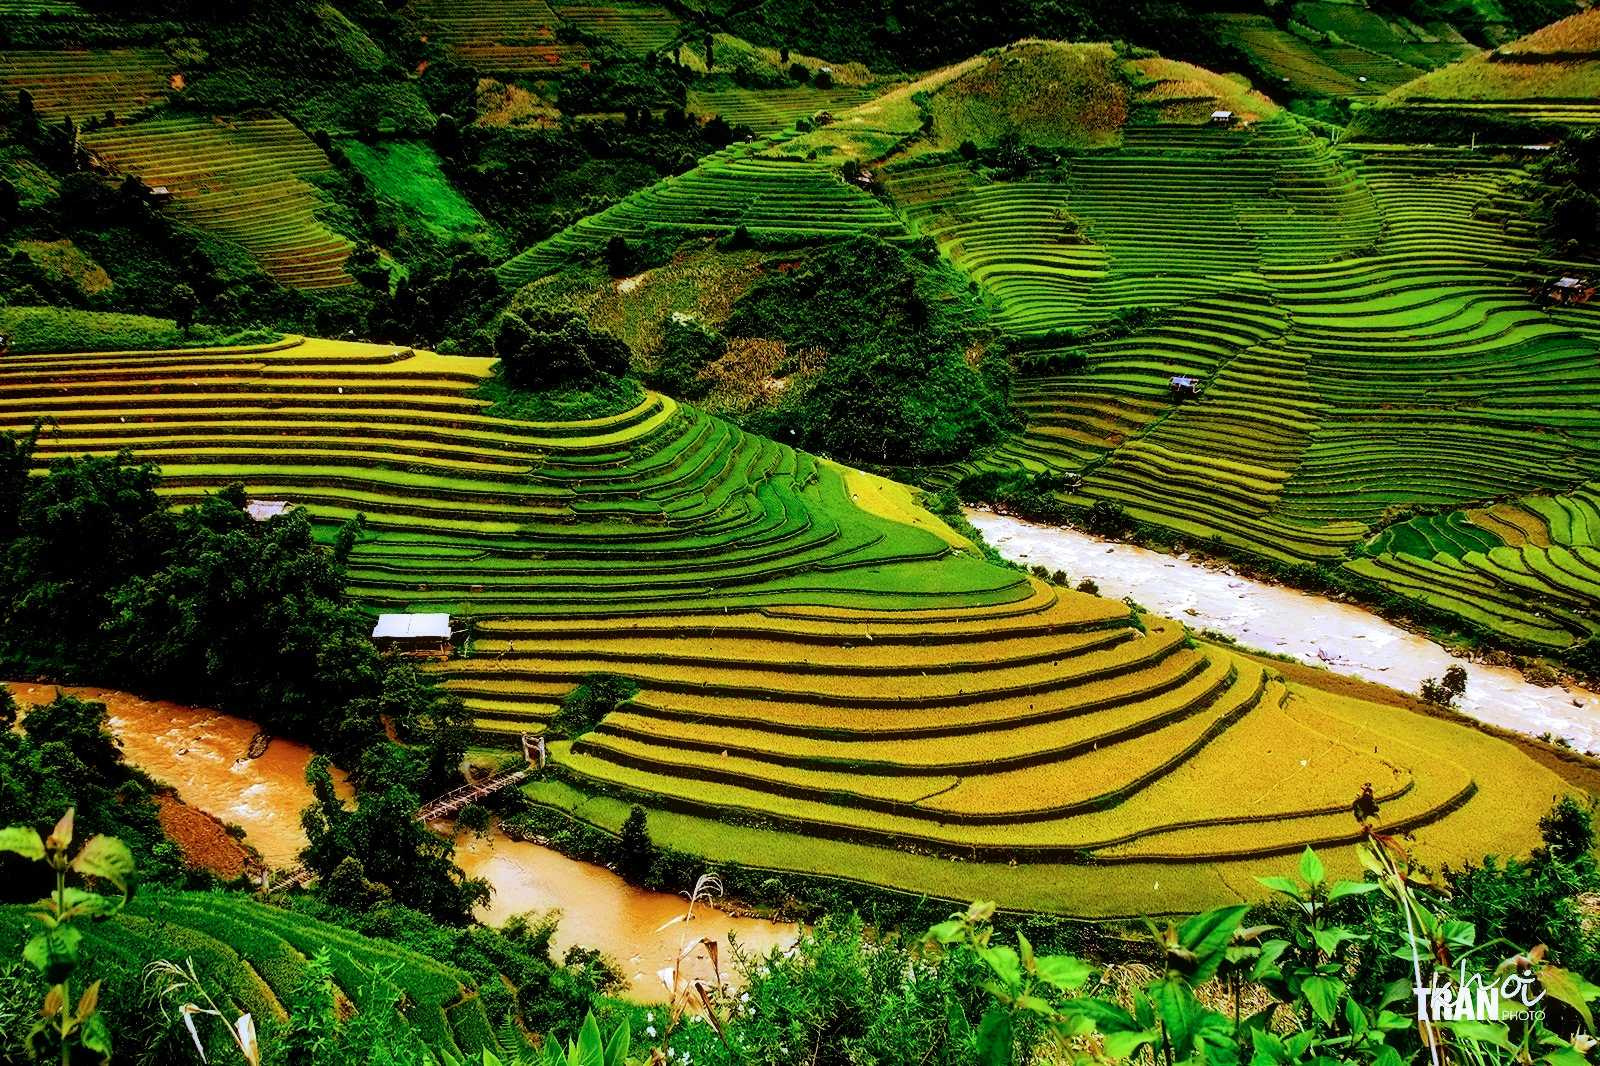 Photograph Terraced rice fields by Khoi Tran Duc on 500px